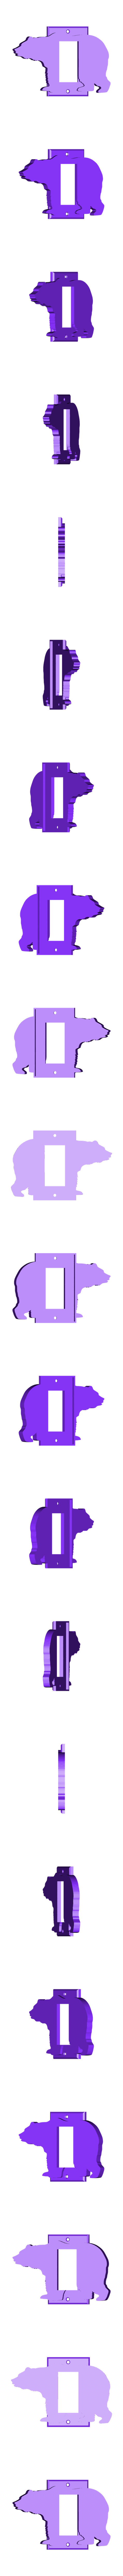 Grizzly_switch.stl Download free STL file Decora Grizzly Bear Wallplate • 3D printer model, Mikeyup